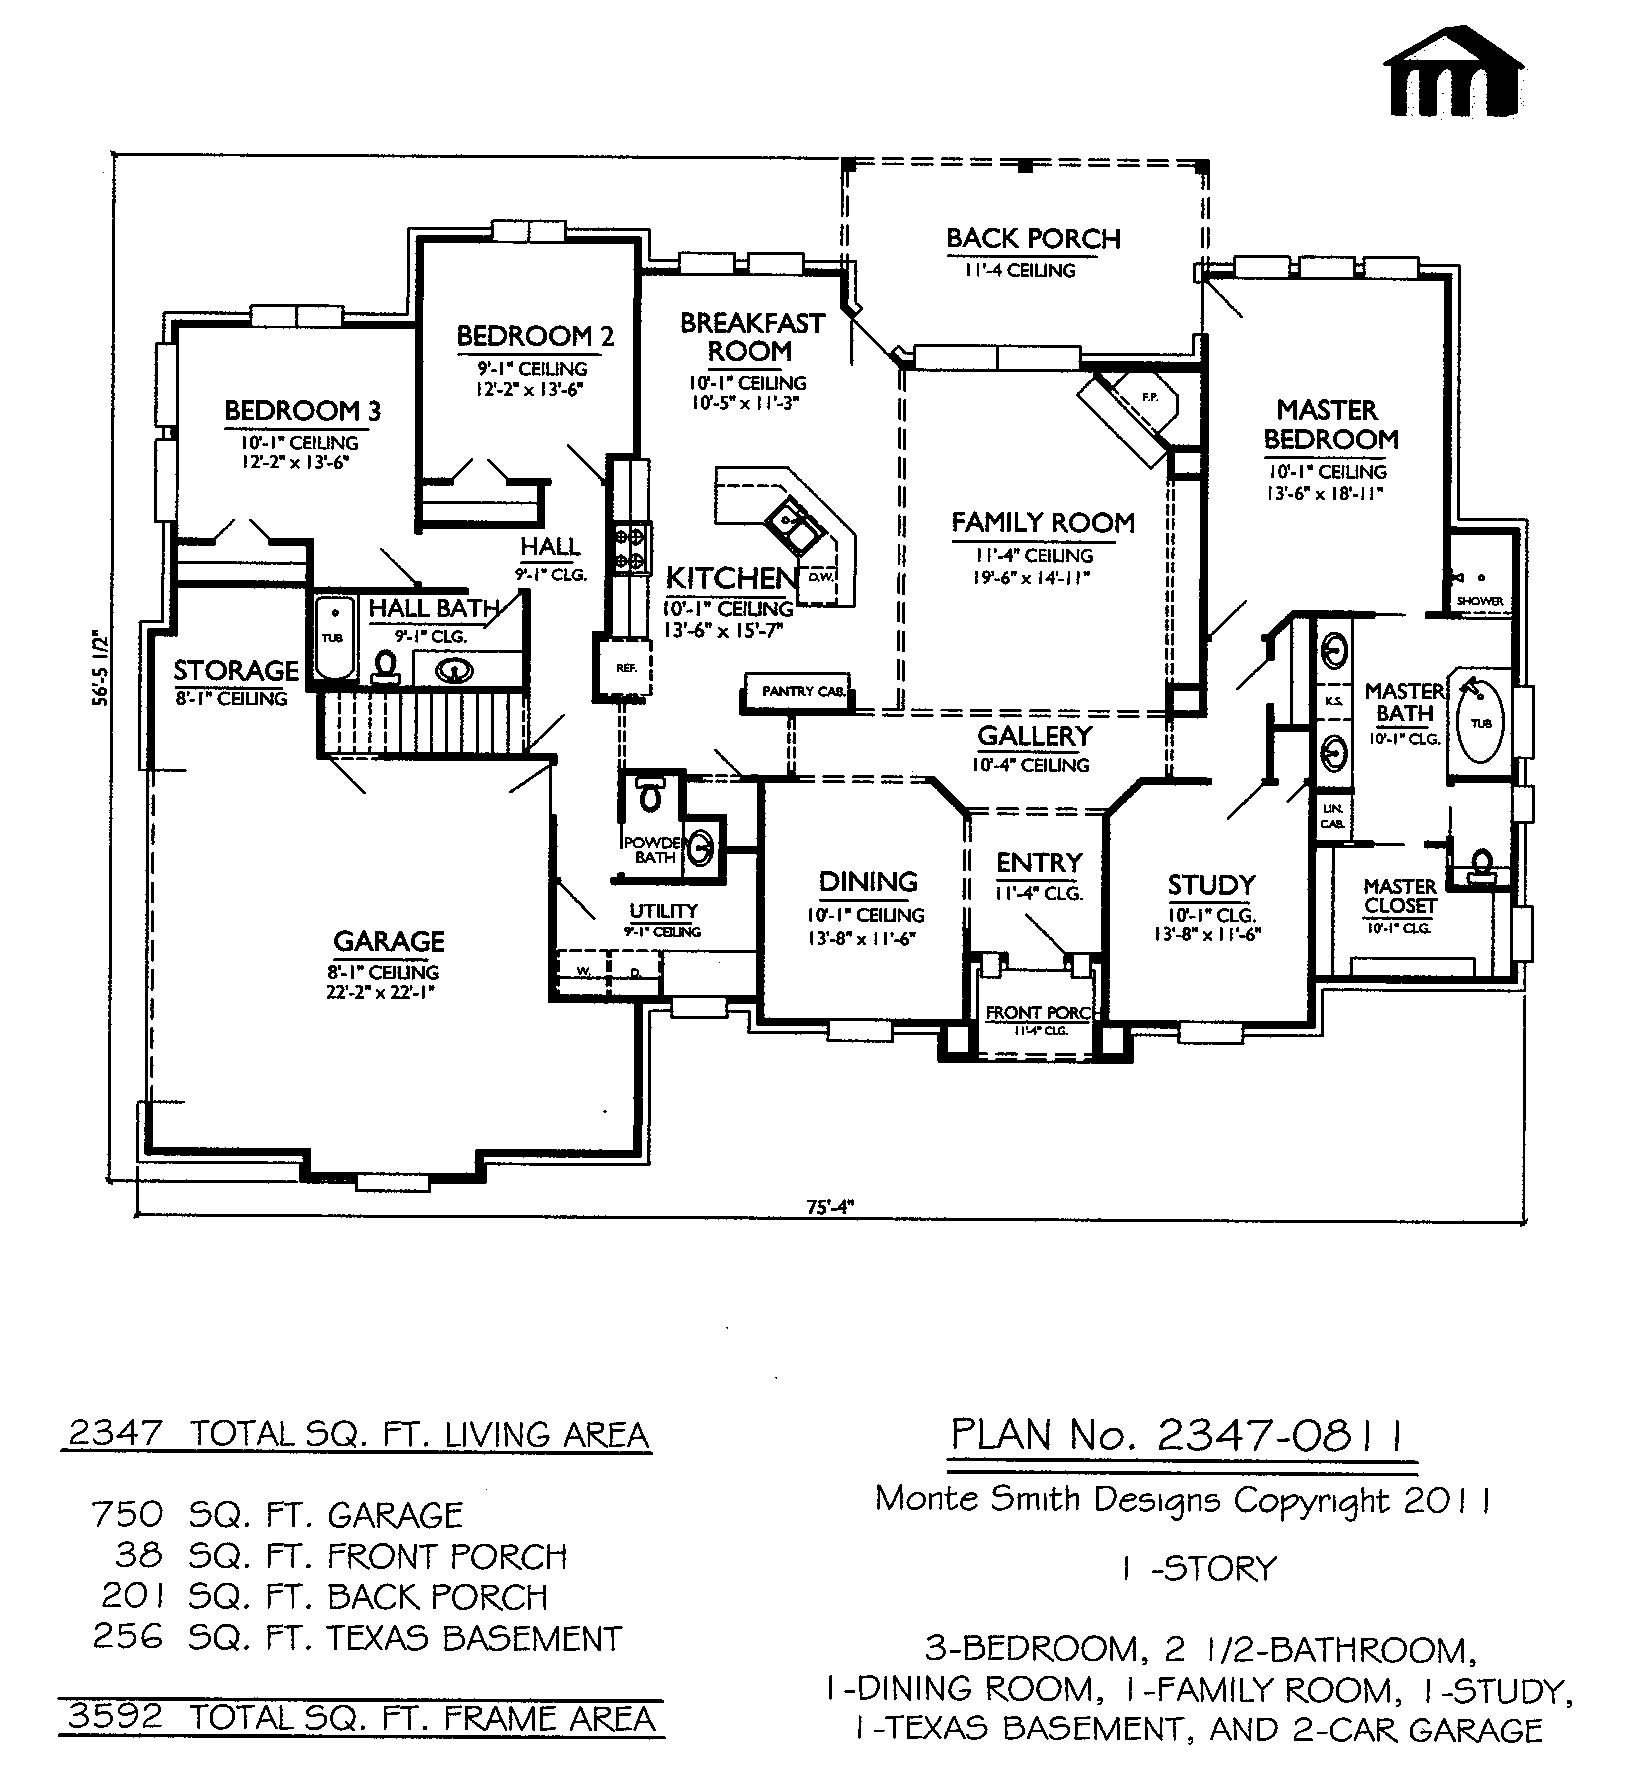 2347 0811 Sq Feet 3 Bedroom 1 Story House Plan House Plans One Bedroom House Plans One Bedroom House